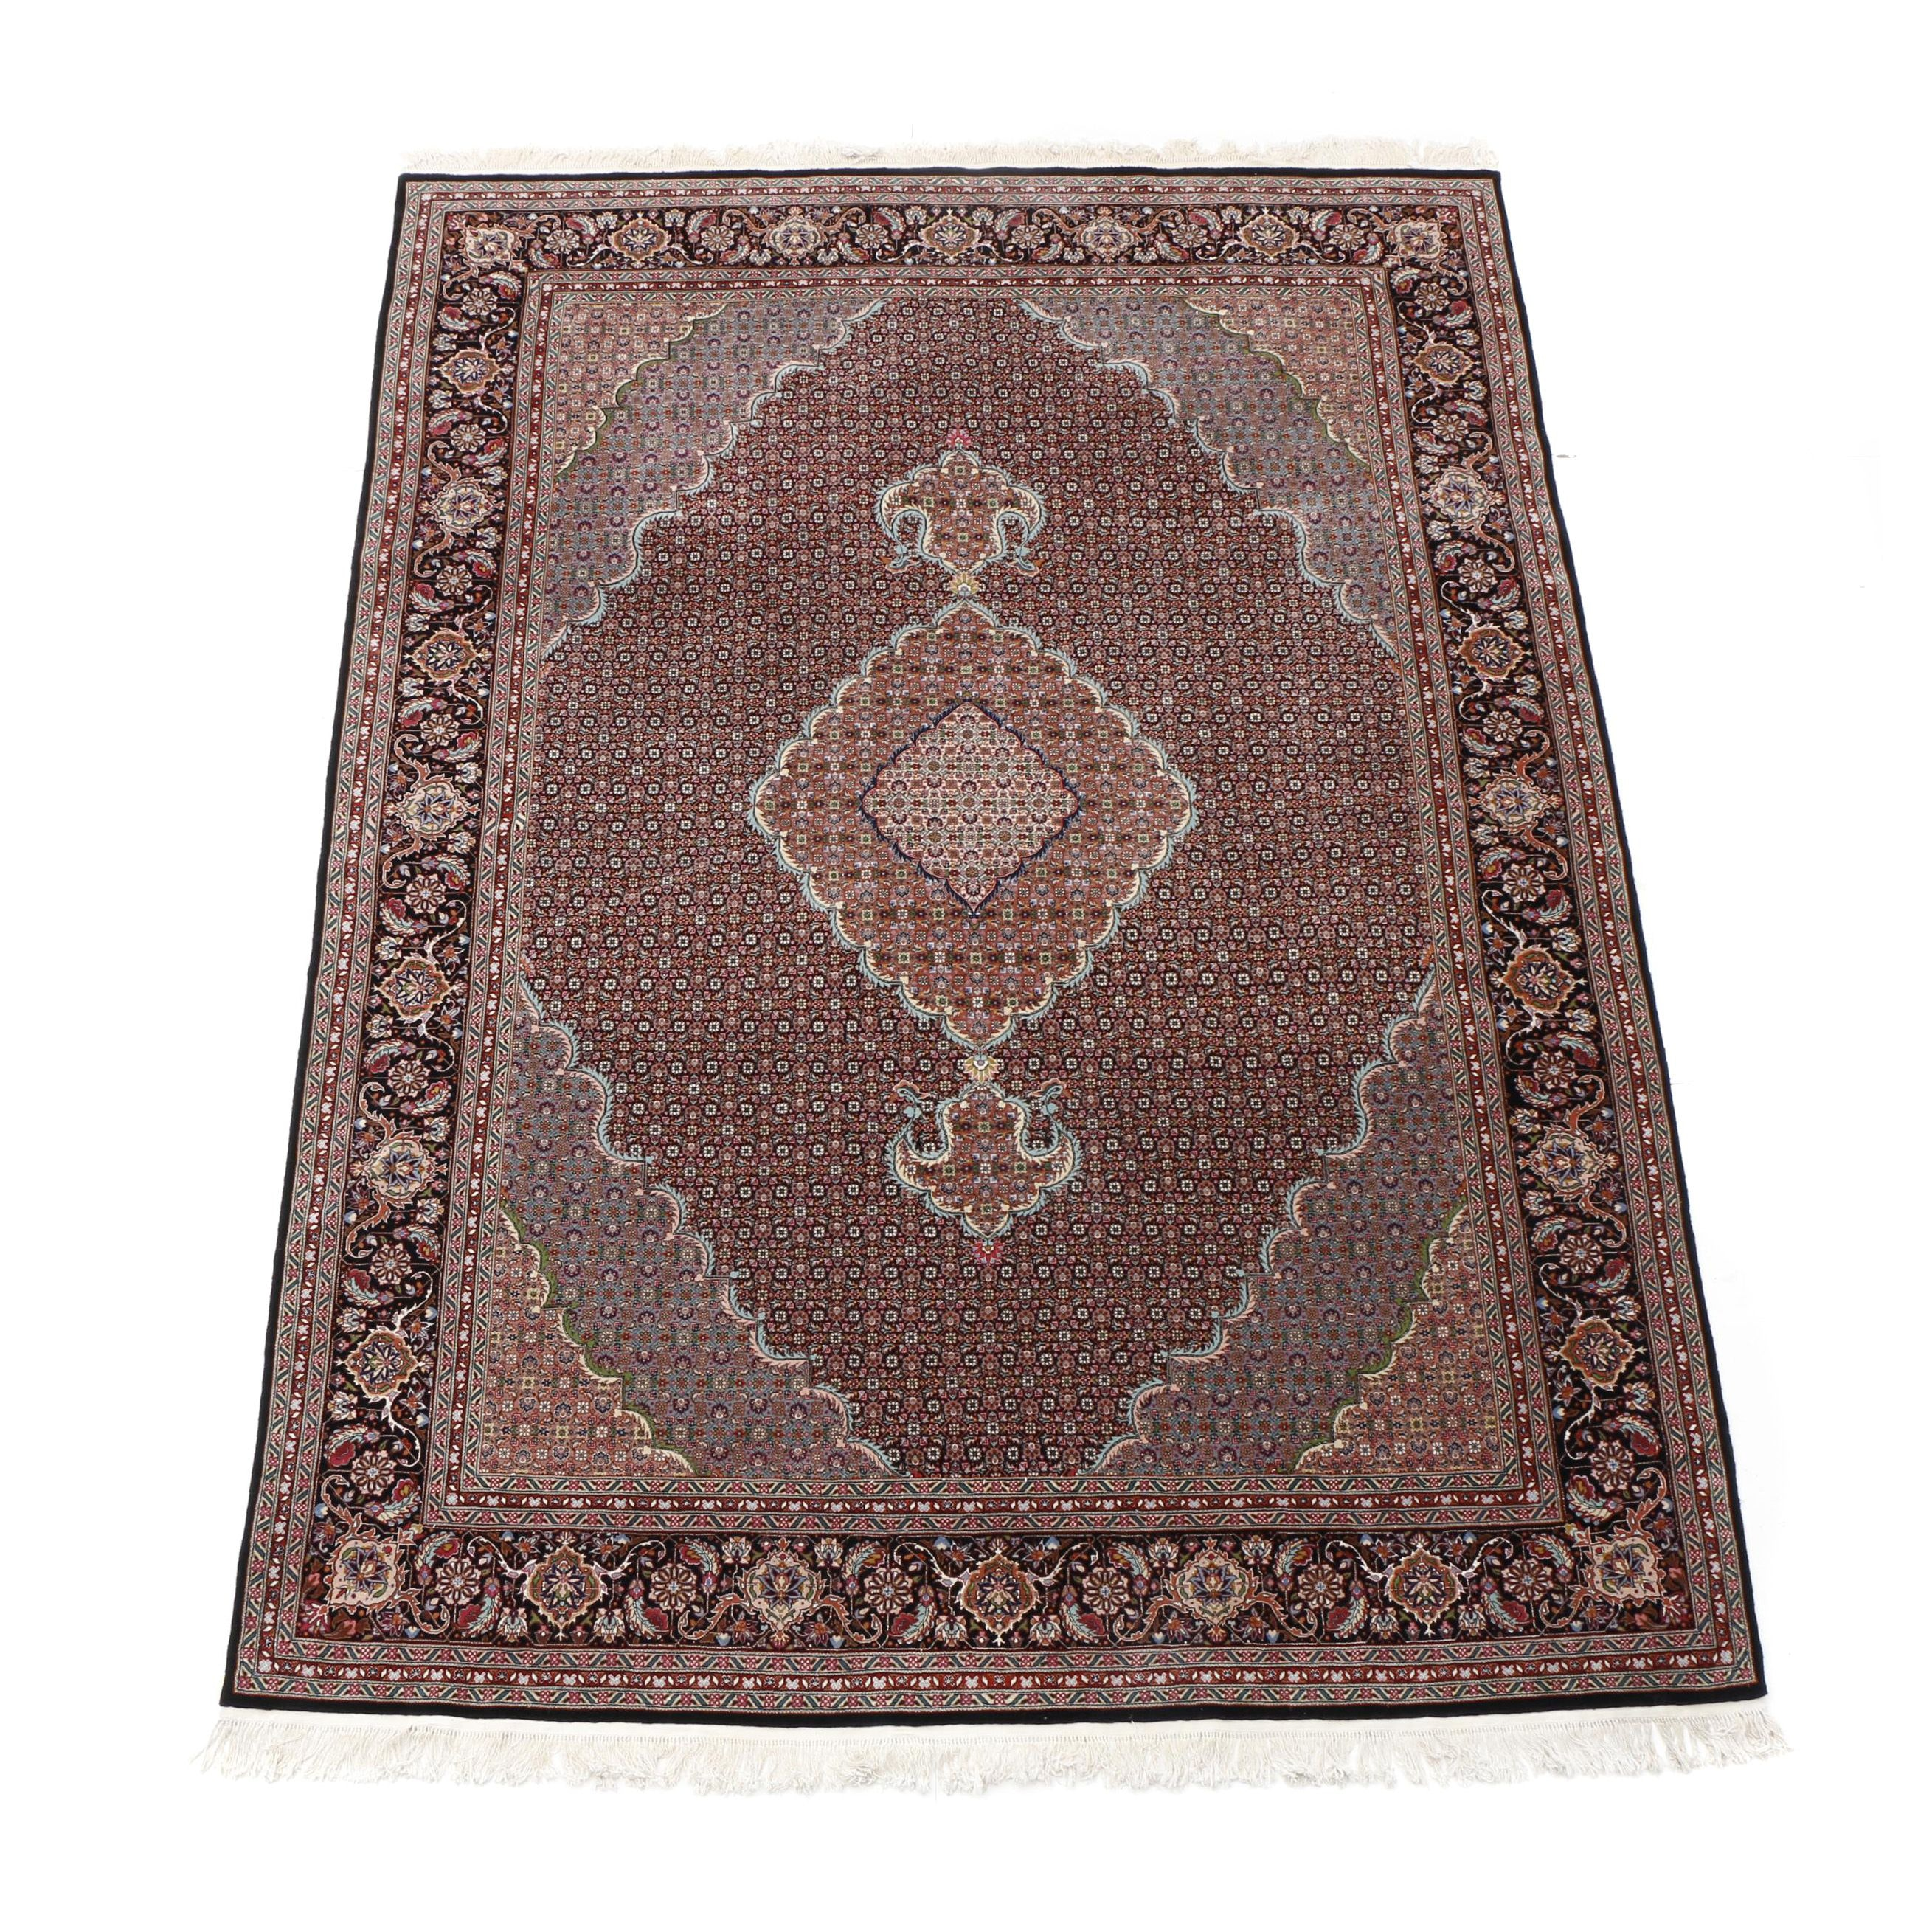 Hand-Knotted Sino-Persian Tabriz Wool and Silk Room-Size Rug